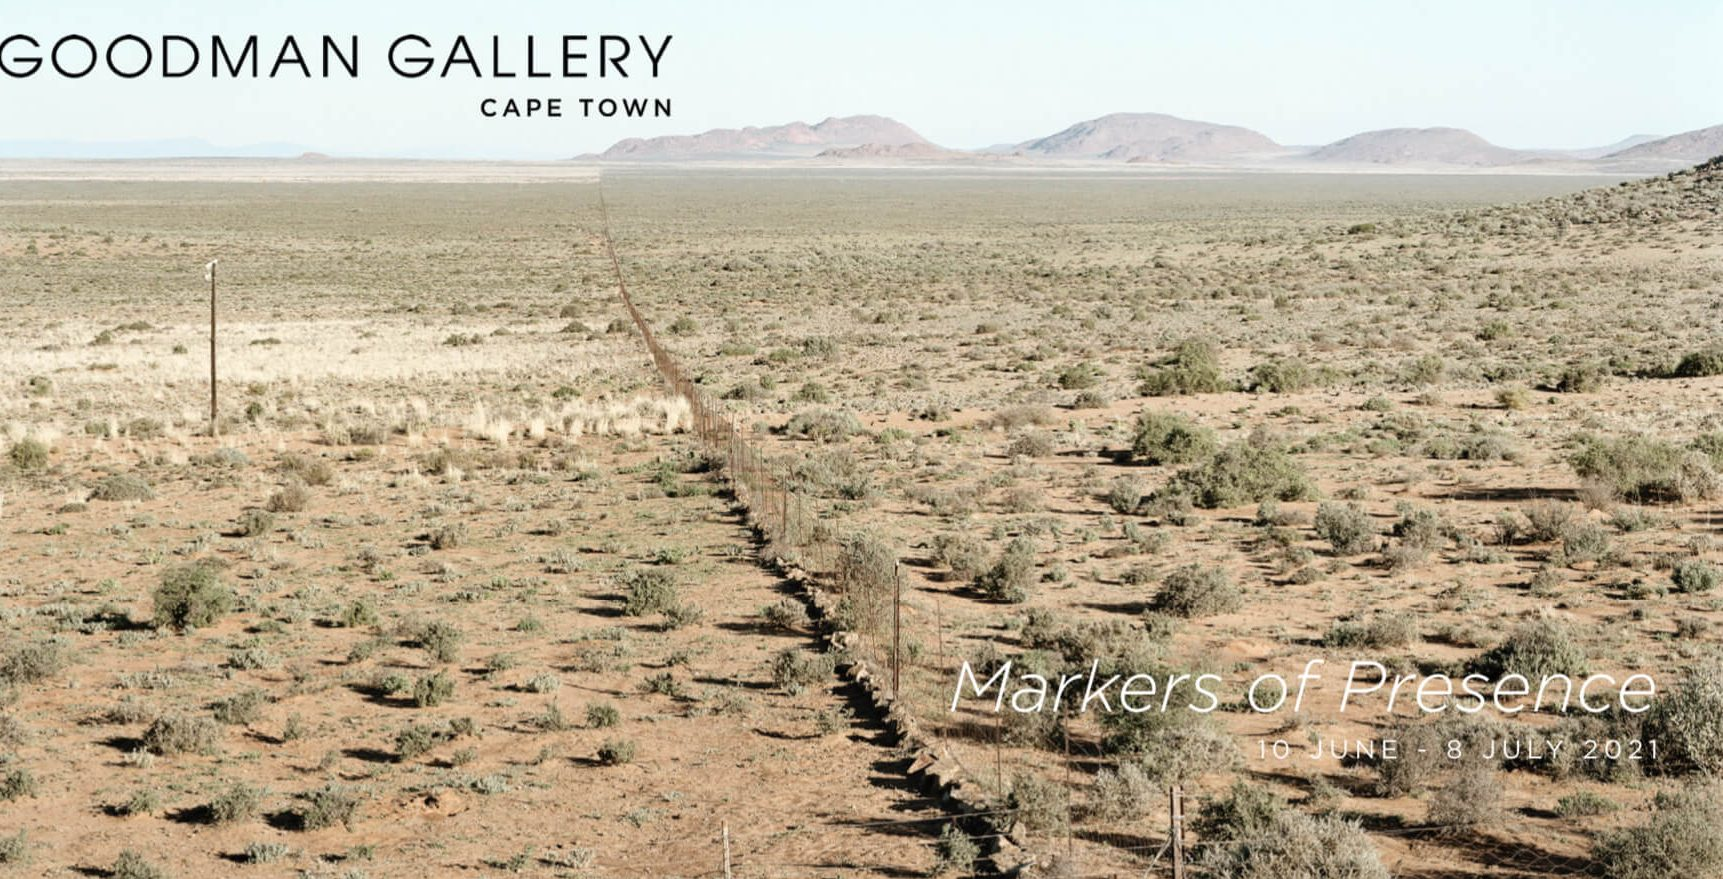 David Goldblatt: Markers of Presence / Goodman Gallery Cape Town, and About Africa